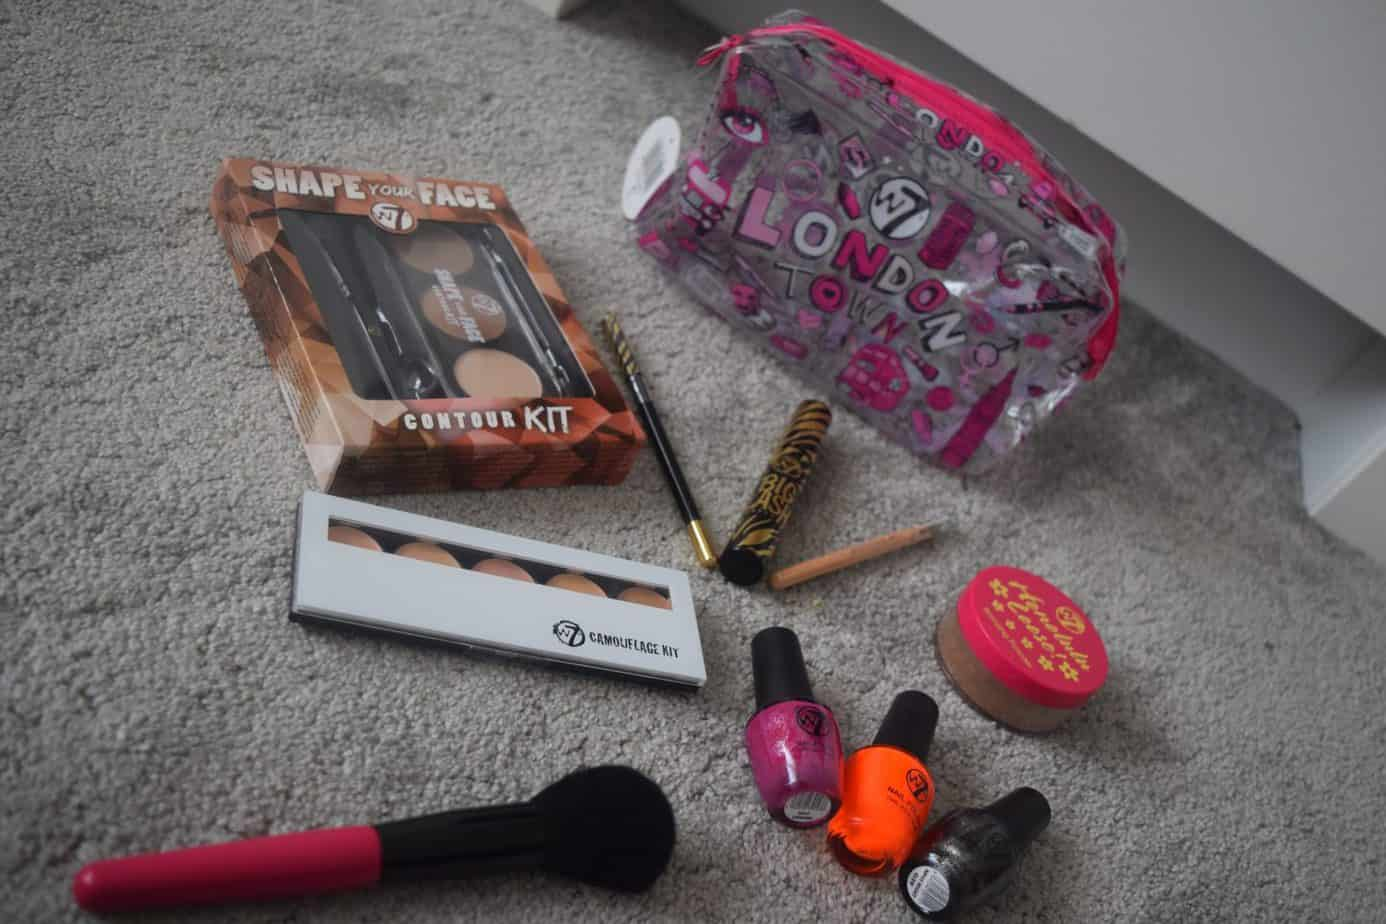 Items in my gifted good bag of W7 products, including concealer, poweder, mascara